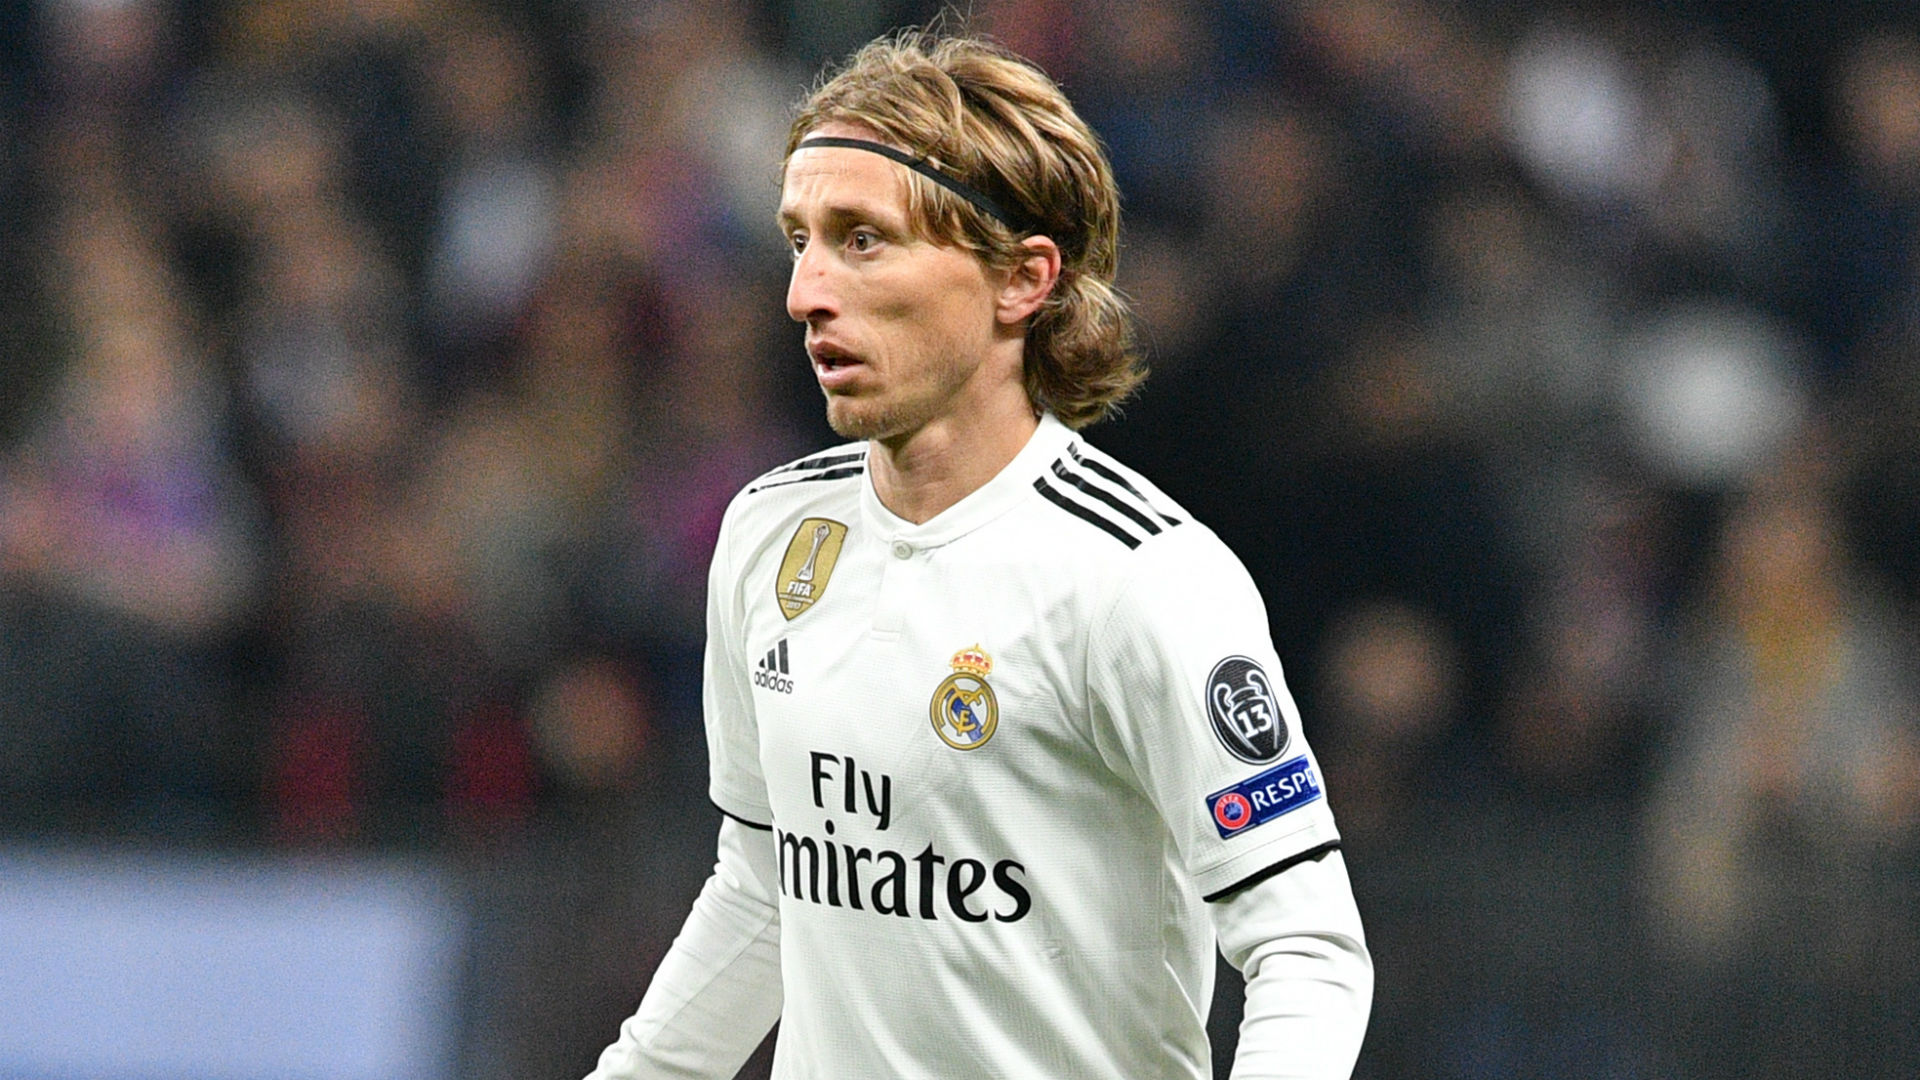 Eden Hazard: Luka Modric deserves to win the Ballon d'Or